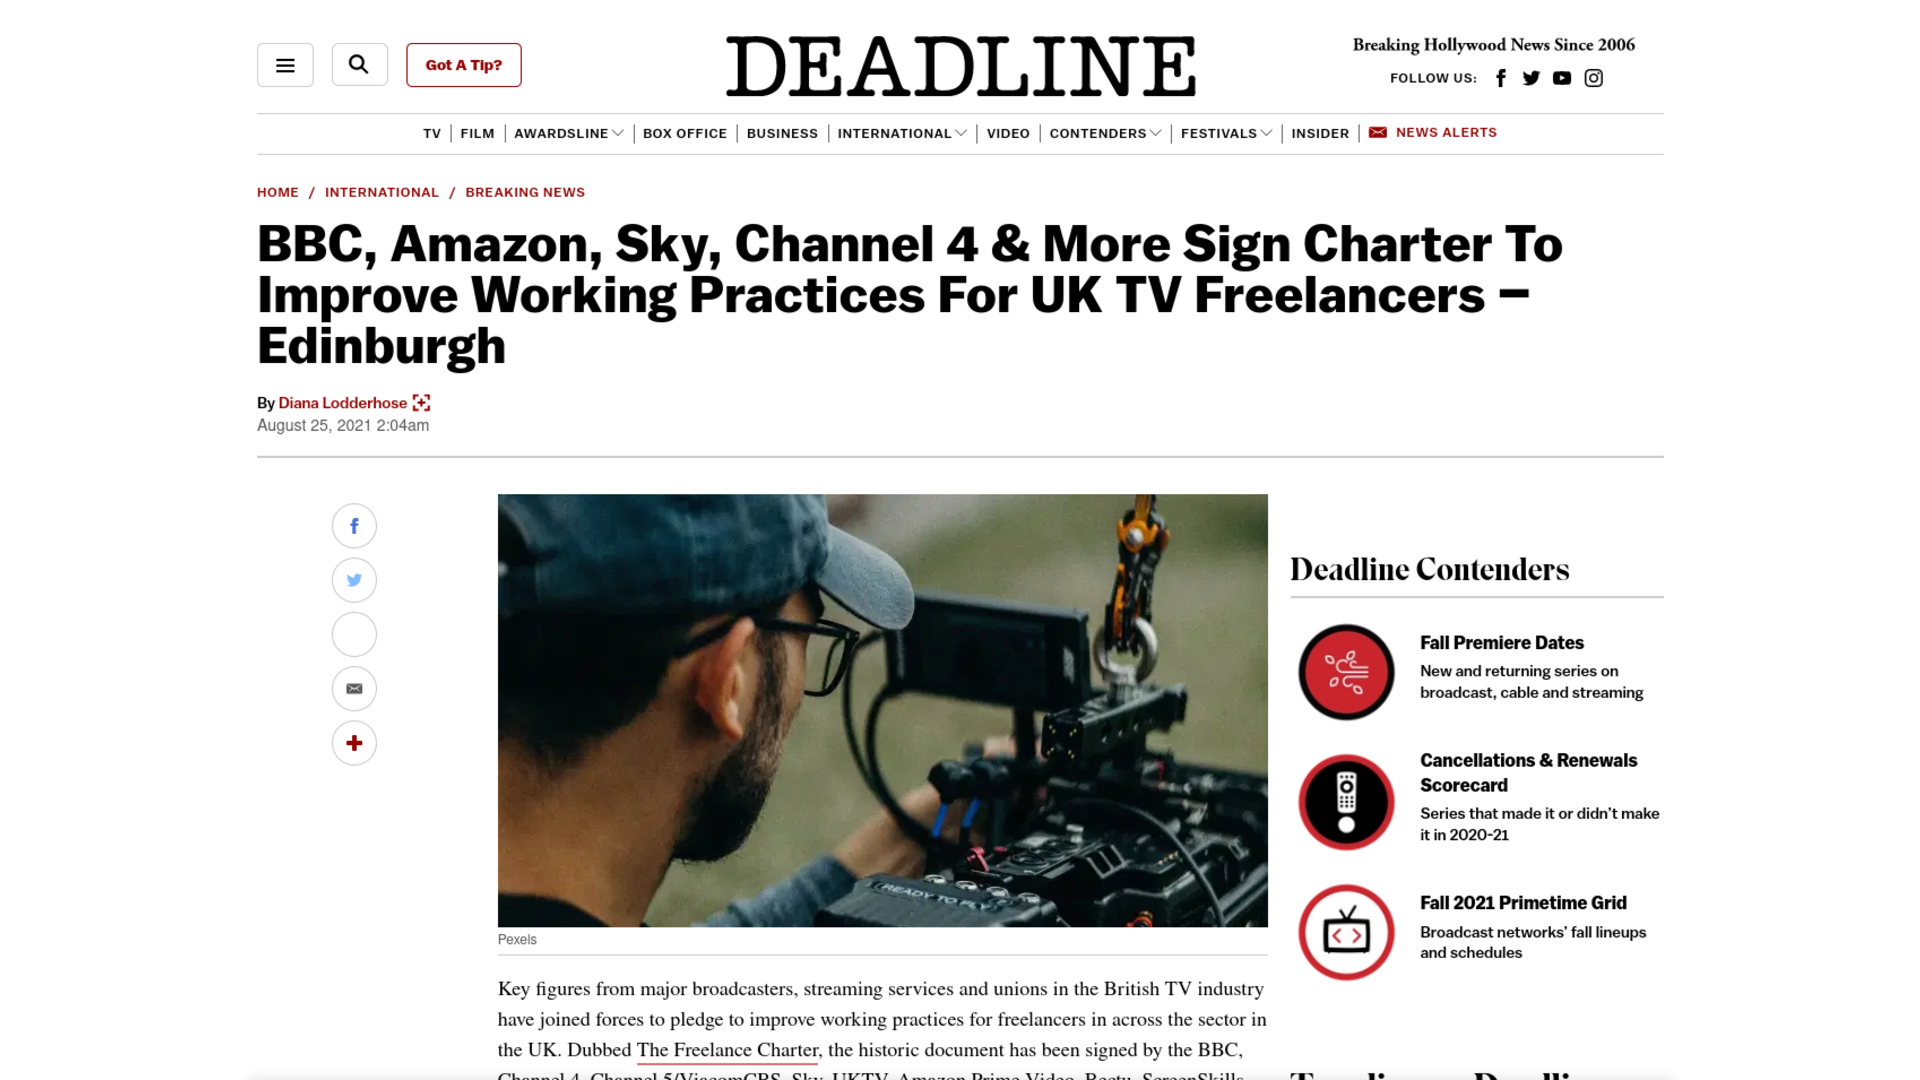 Fairness Rocks News BBC, Amazon, Sky, Channel 4 & More Sign Charter To Improve Working Practices For UK TV Freelancers – Edinburgh